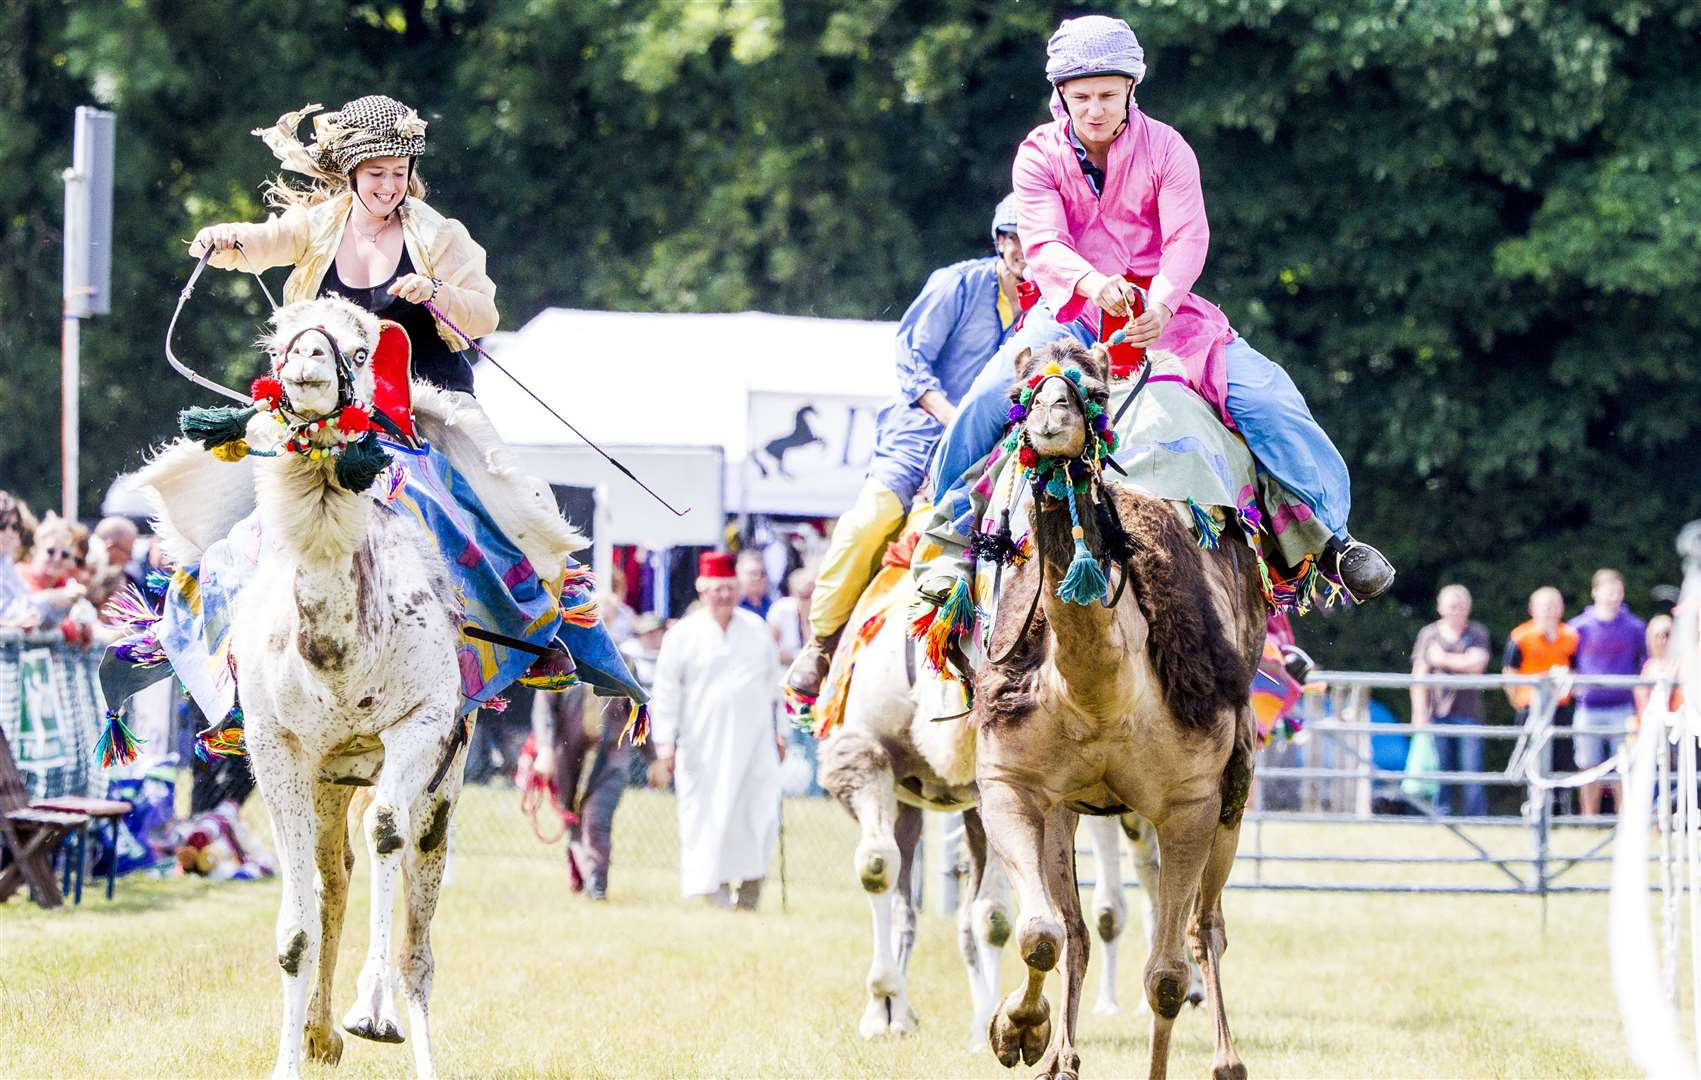 Racing camels will be at the Kent County Show